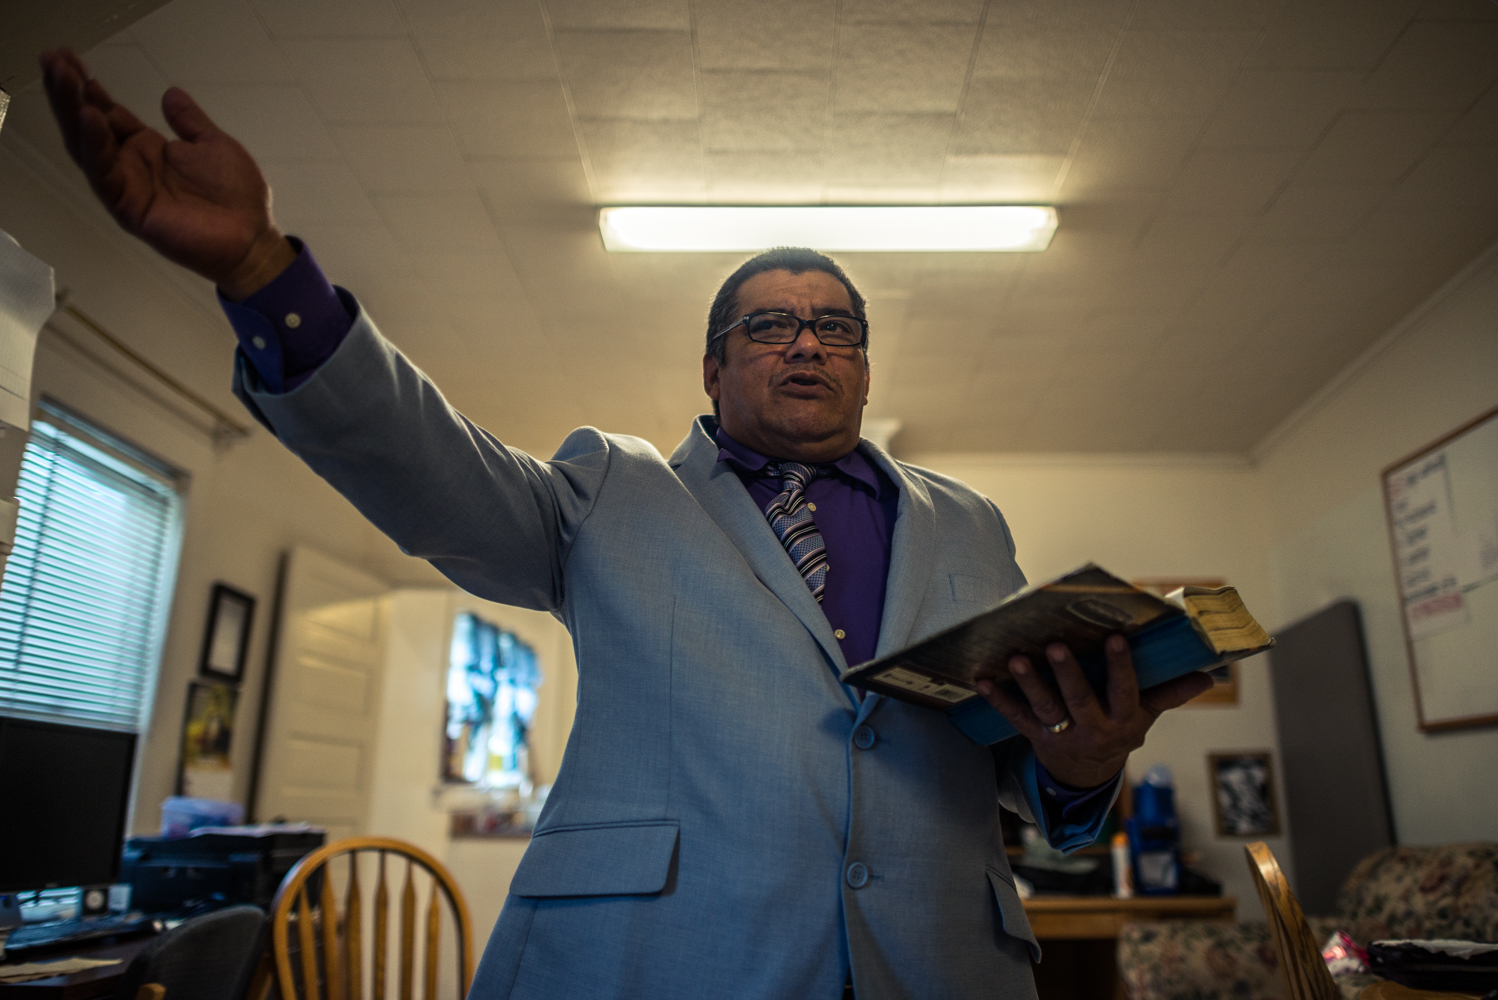 Durham, North Carolina, 2018These are the most exciting days of the month for José.  A pastor at a church in Raleigh, North Carolina, preaching is his passion.  Now in sanctuary, his congregation must travel to Durham to hear his sermon.